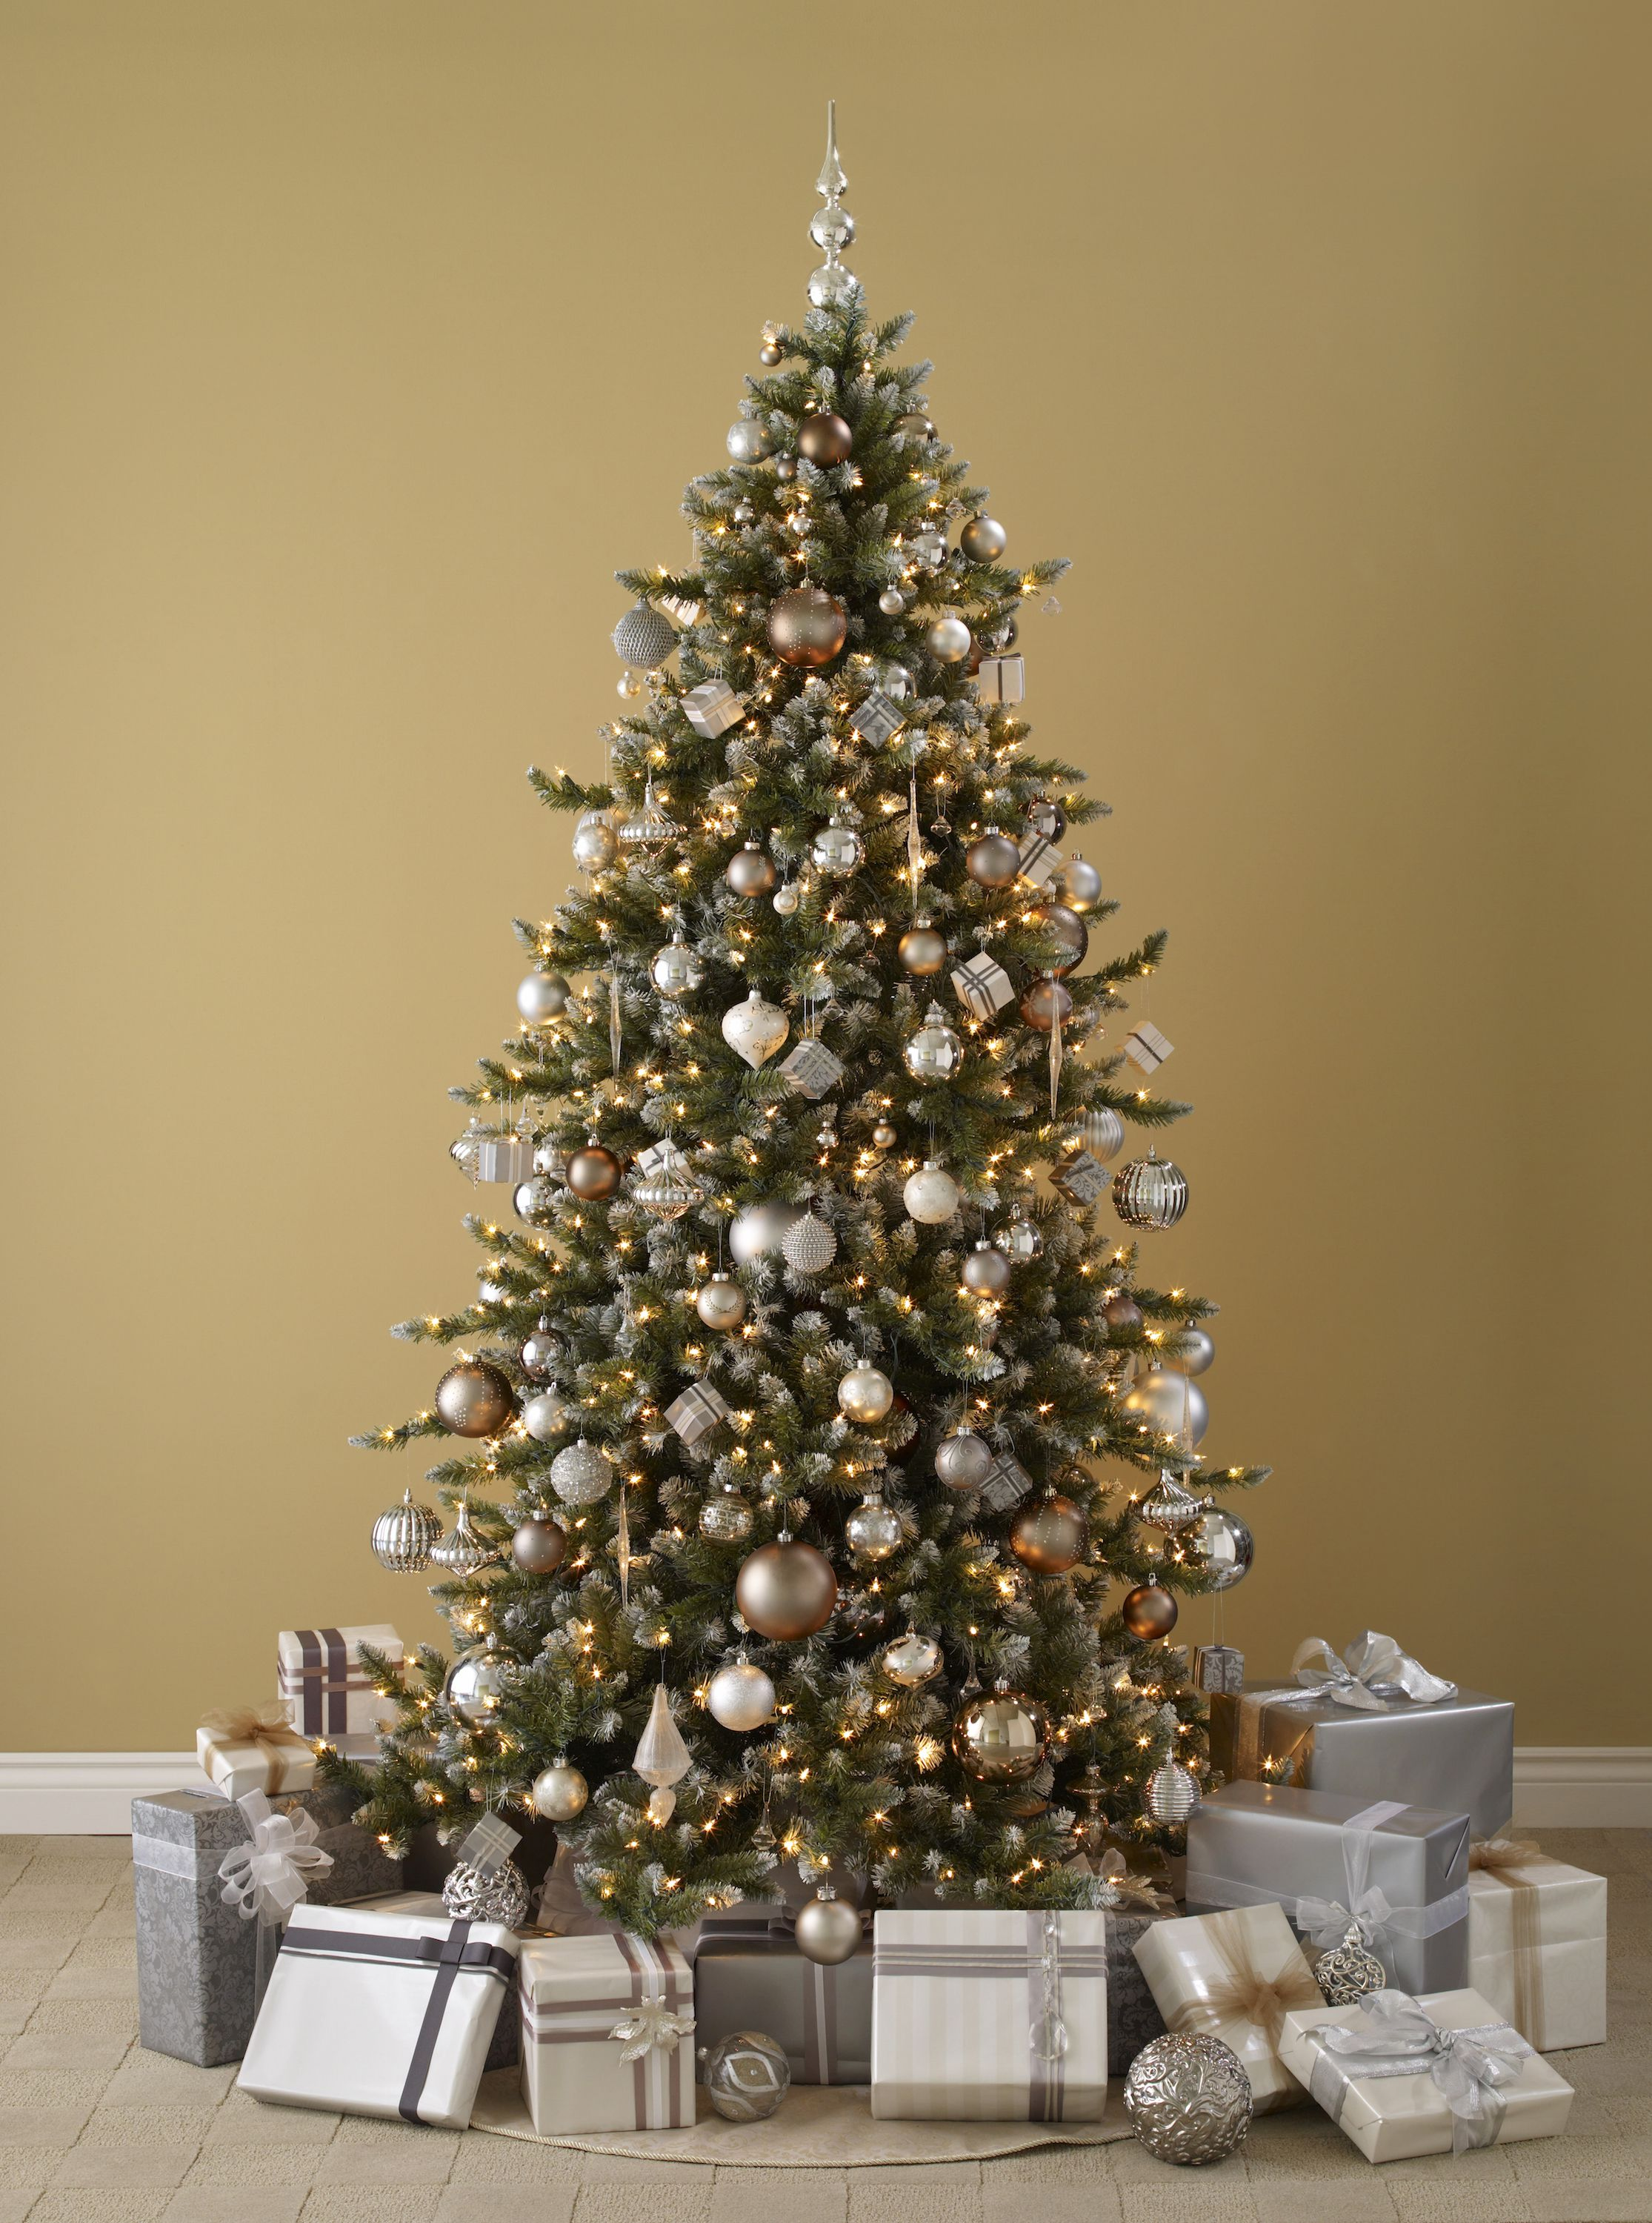 20+ Best Christmas Decorating Ideas - Tips For Stylish Holiday ...